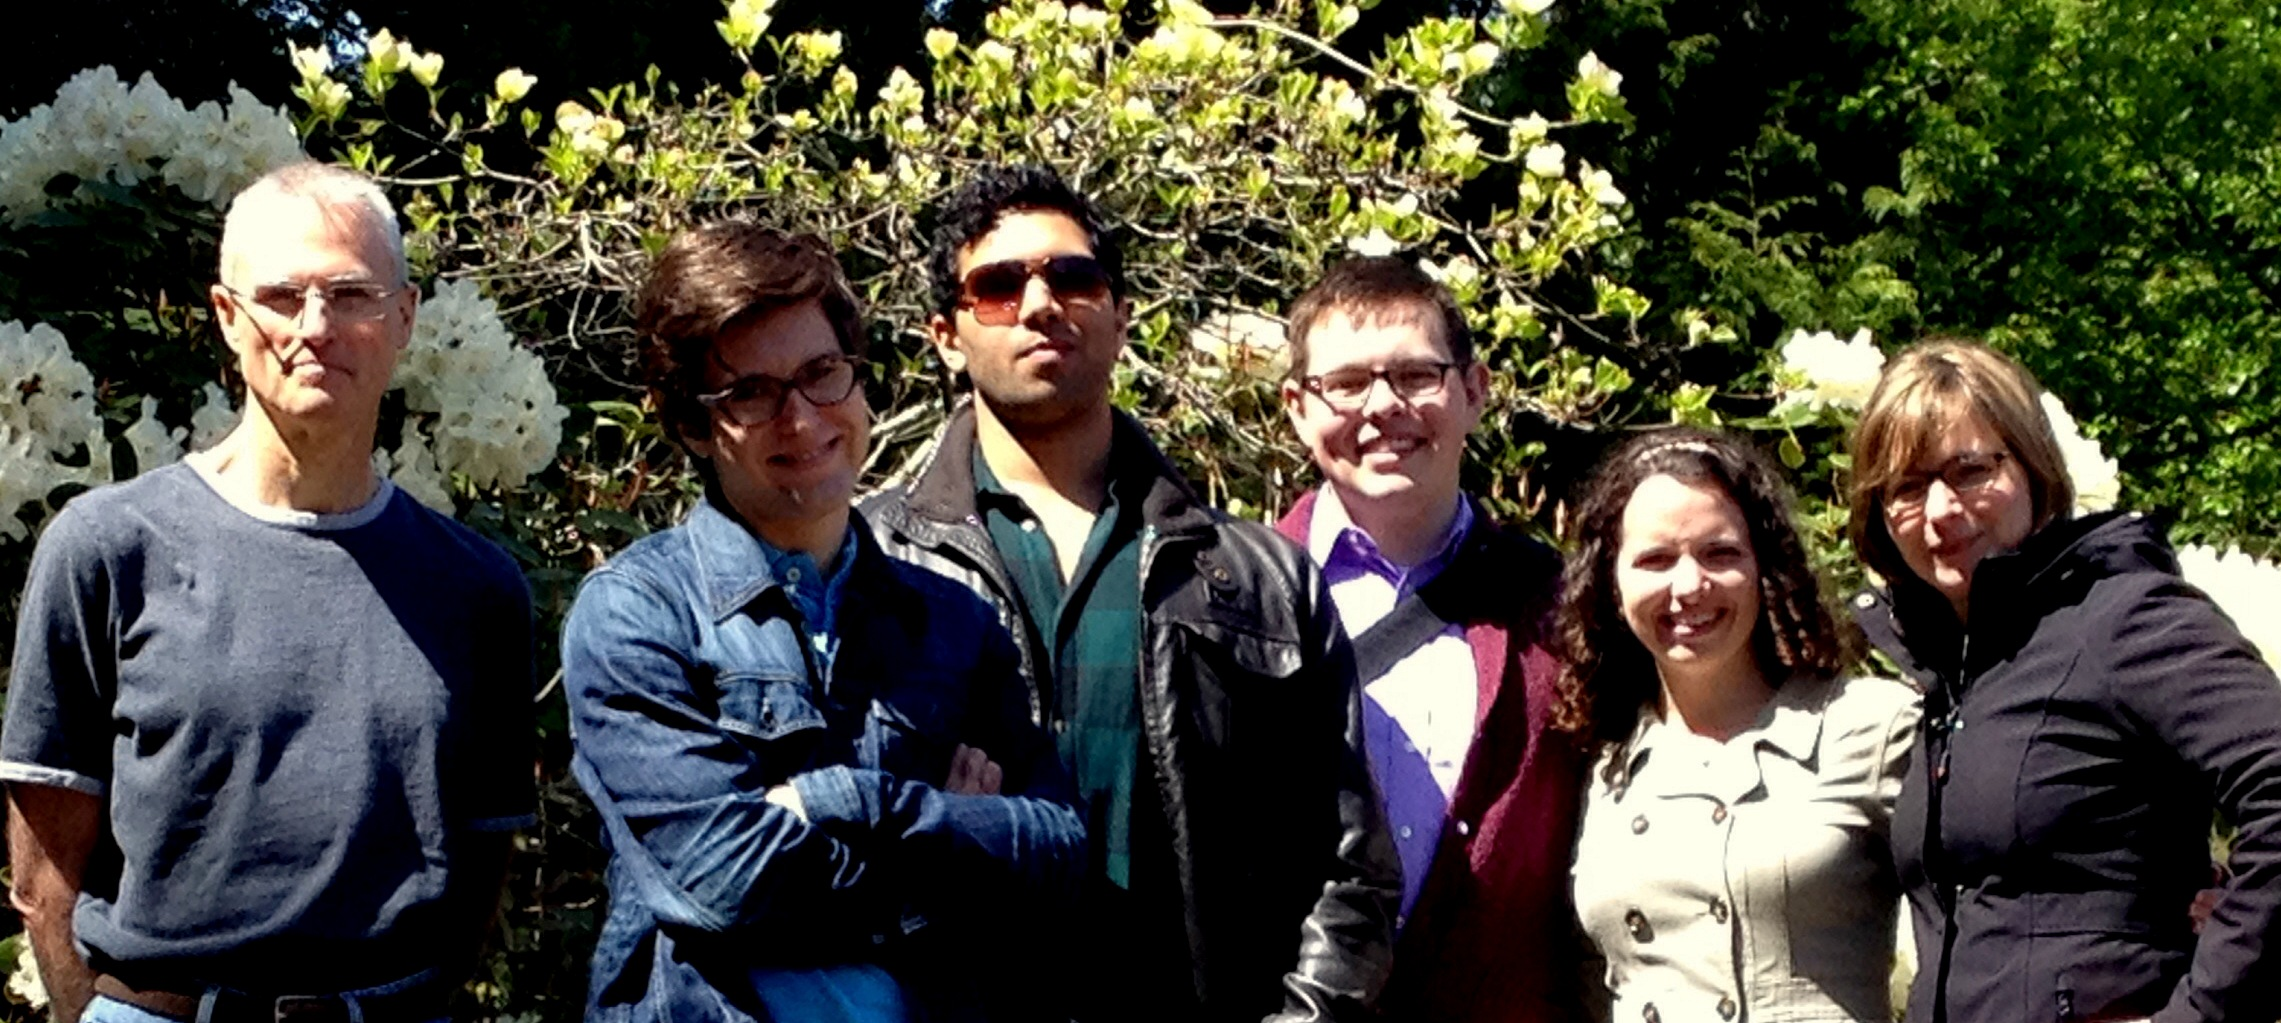 L-R: Martin, Tye, Zaqir, Nathan, Sarah, and Kim after our recent